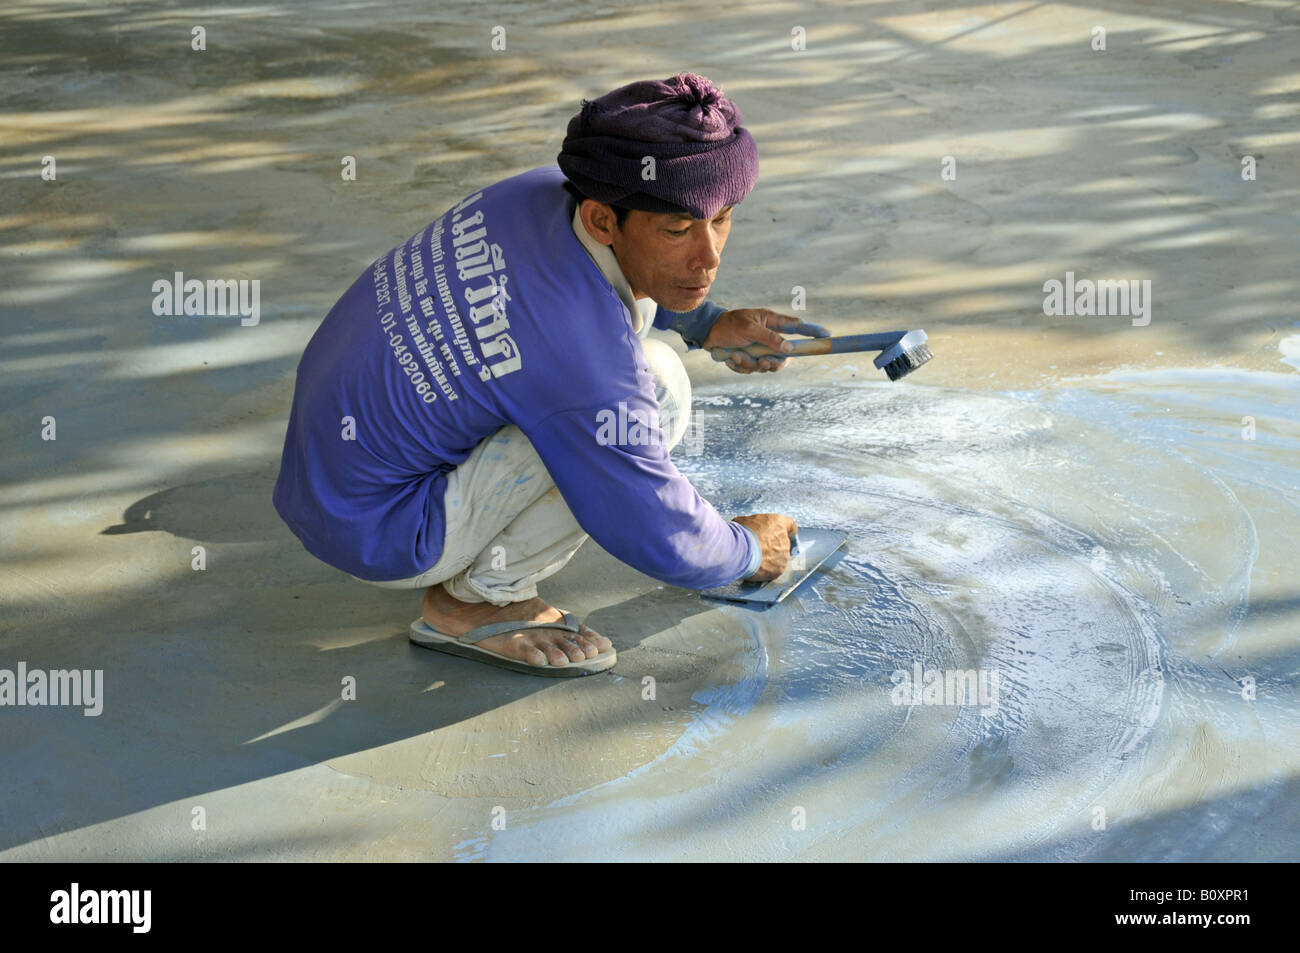 migrant worker, Thailand, Koh Chang - Stock Image